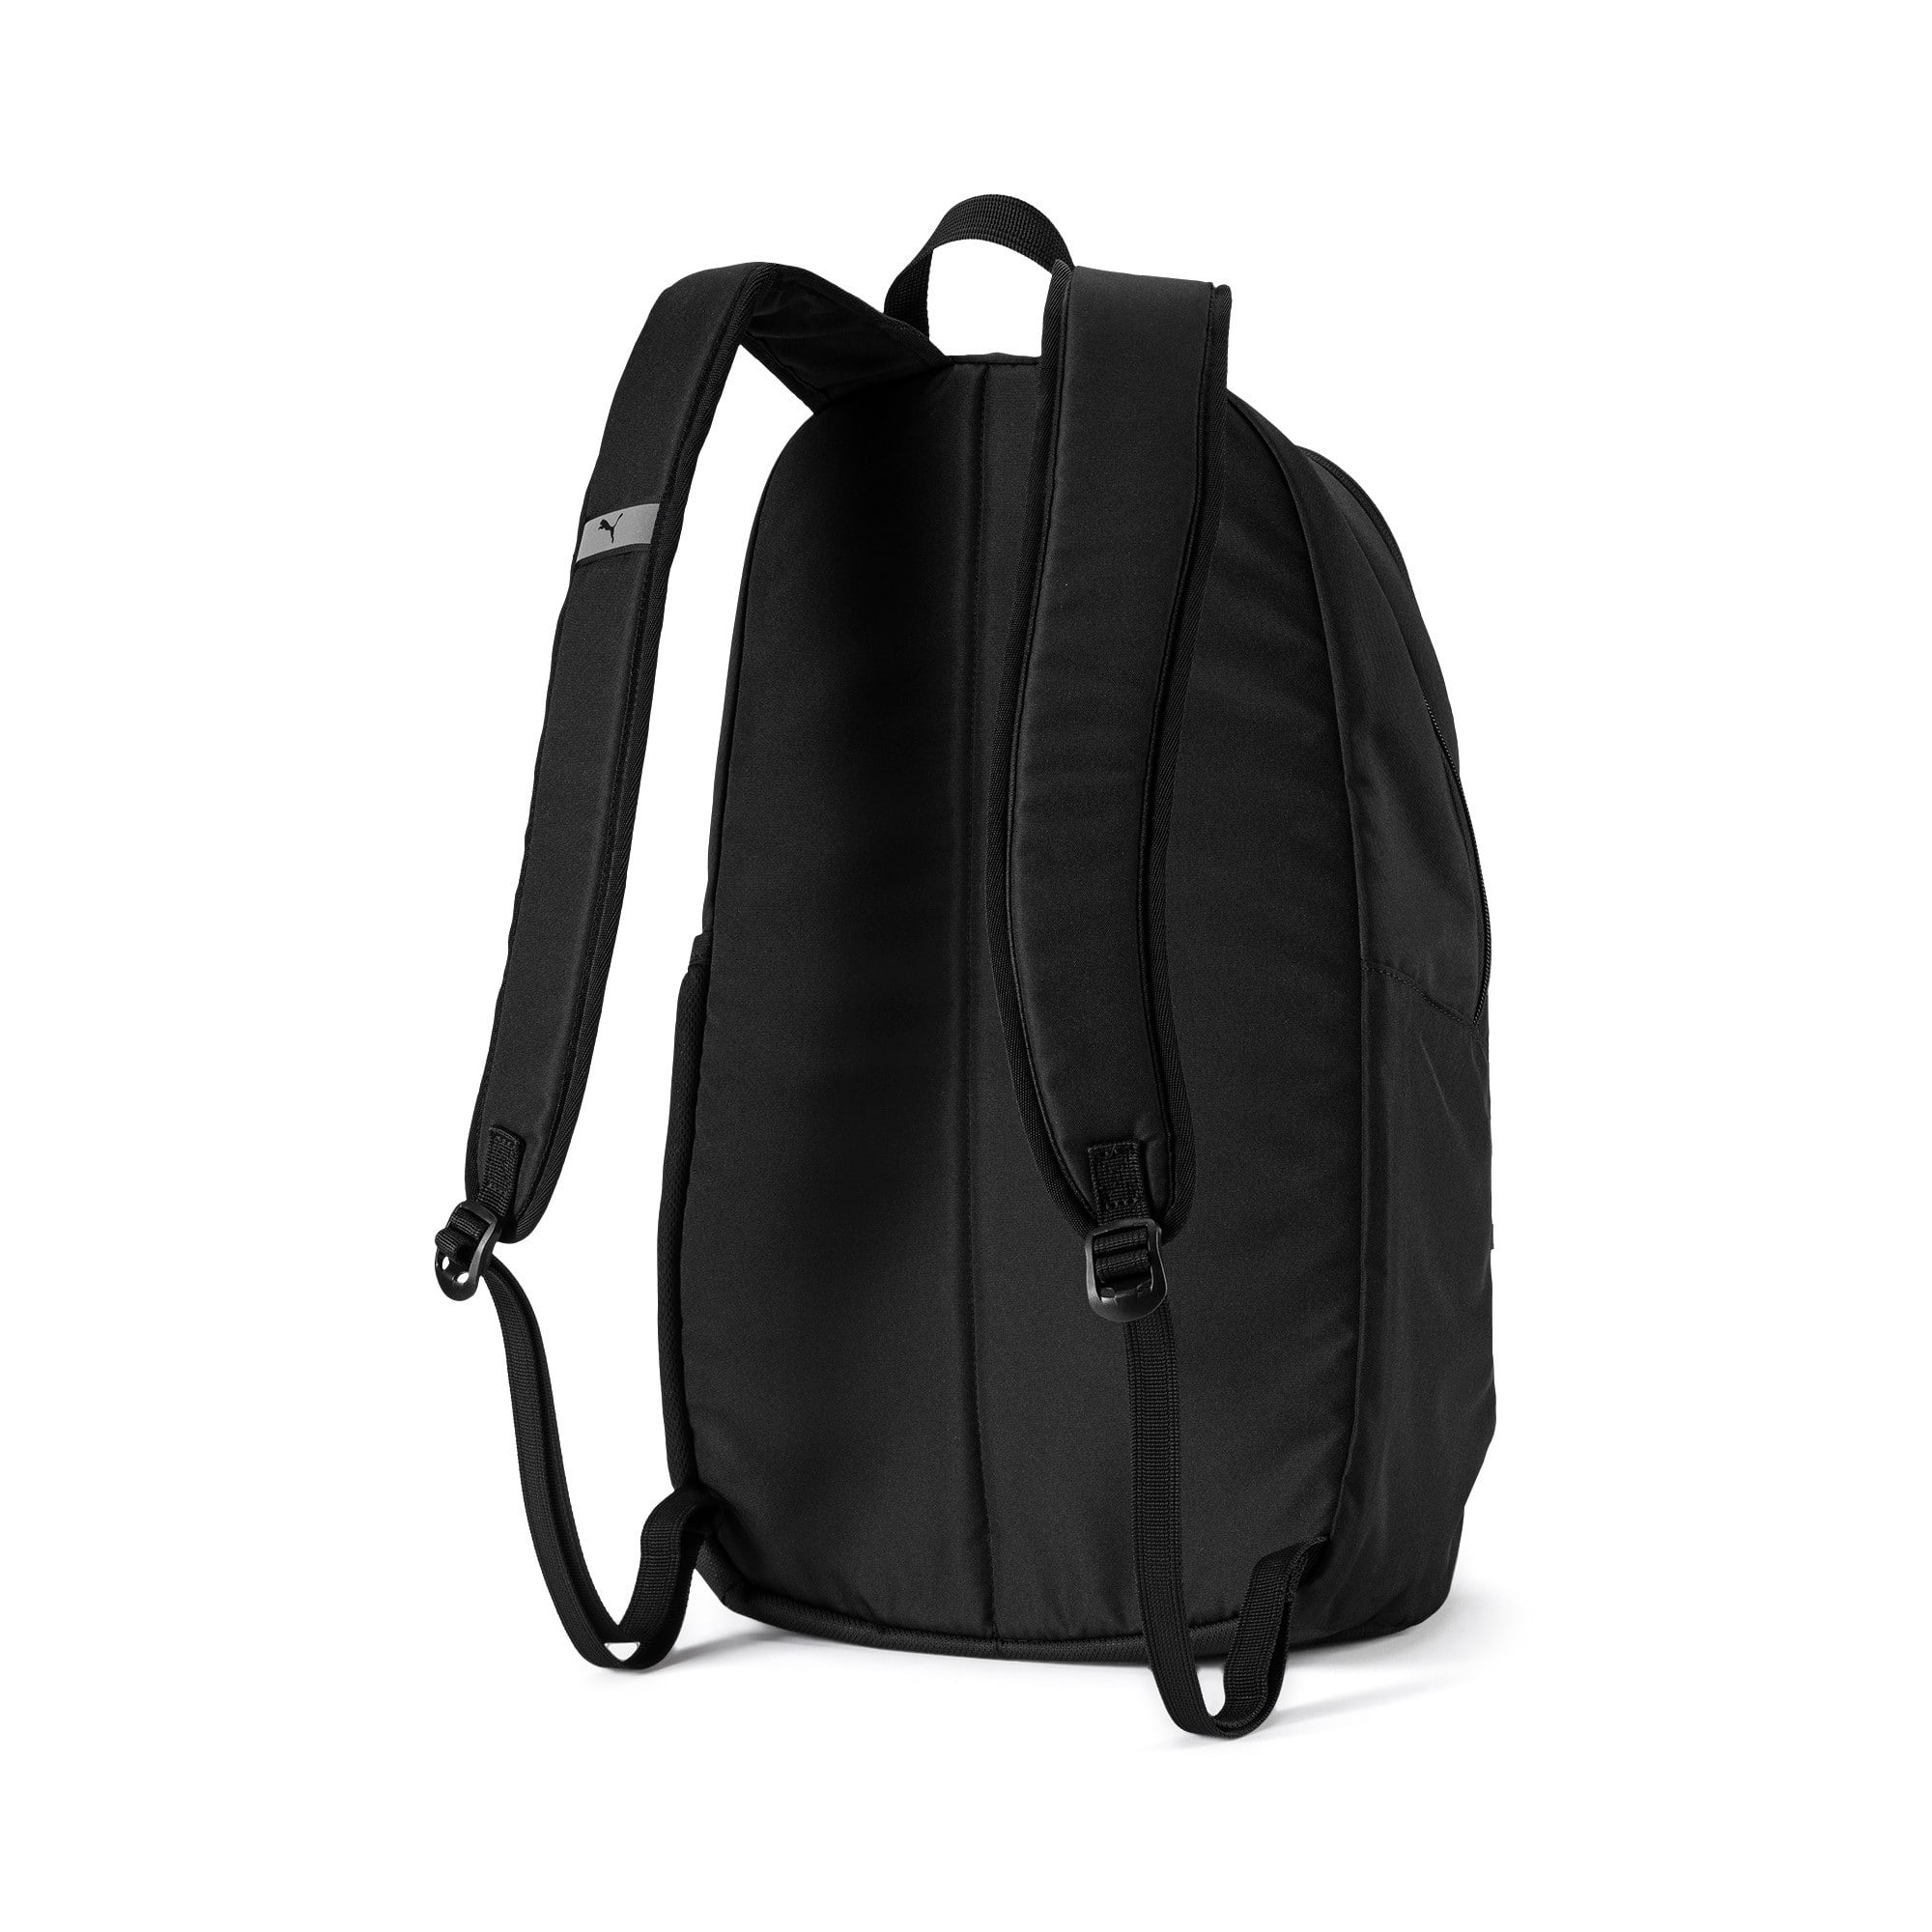 Thumbnail 2 of Ferrari Fanwear Rucksack, Puma Black, medium